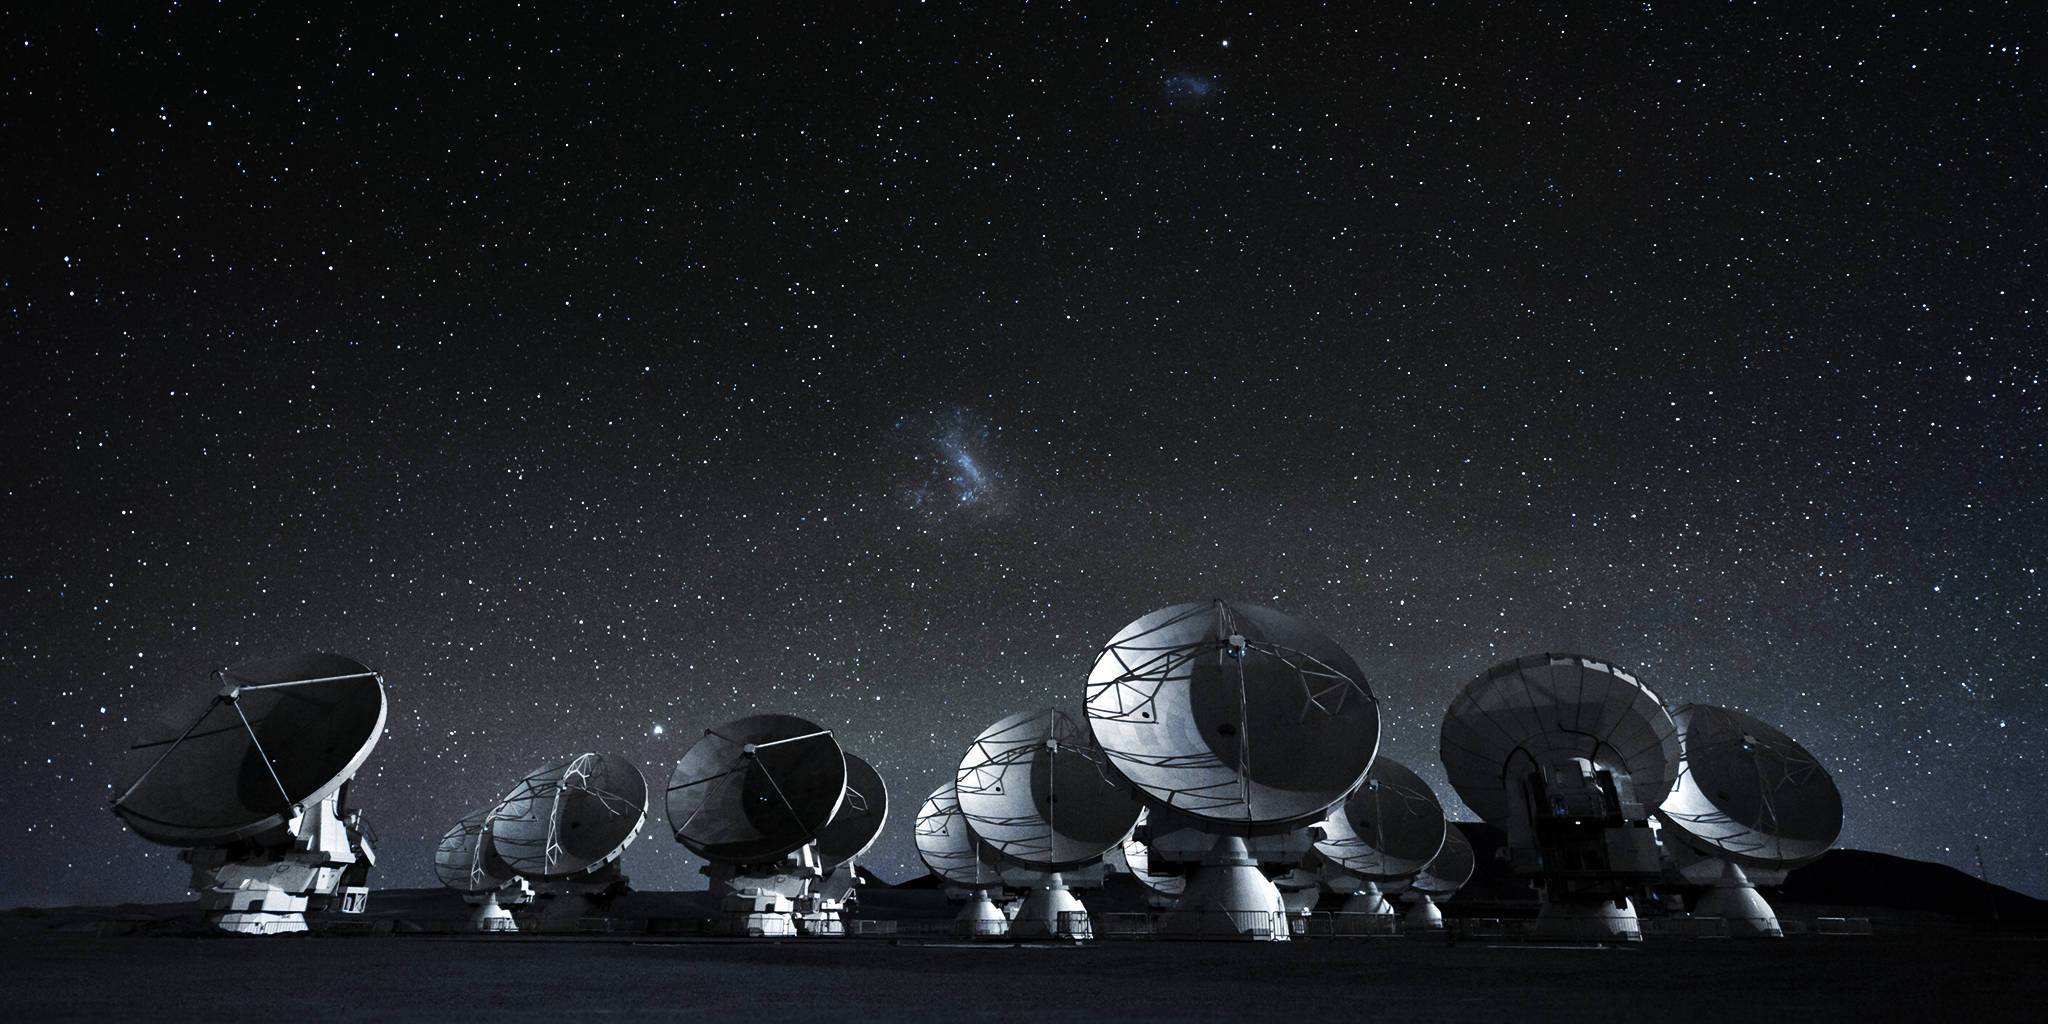 Radiotelescopes<em>Credit: ESO/C. Malin, modified by Krischan</em>